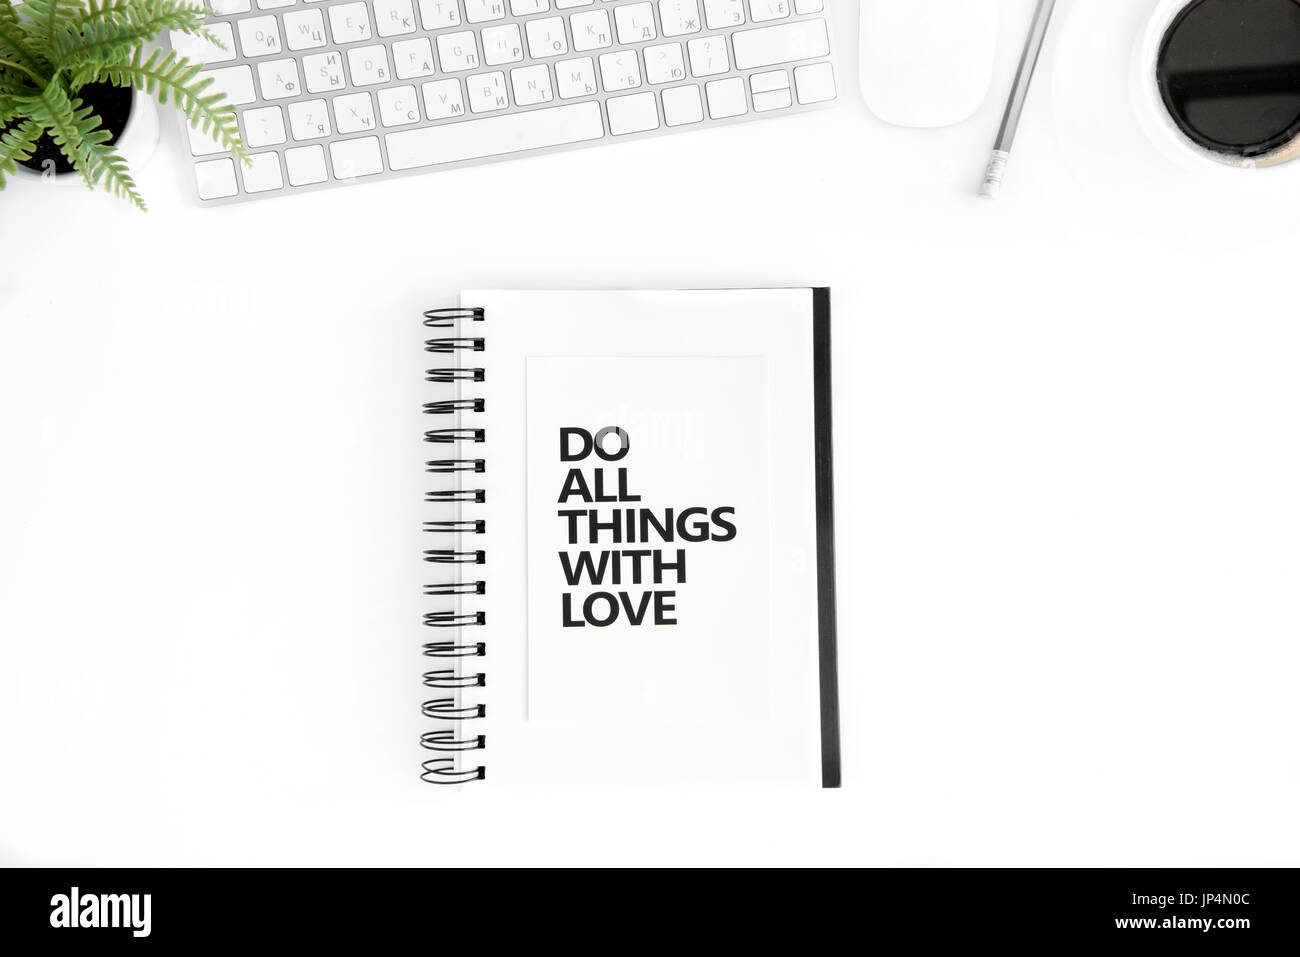 Flat Lay With Do All Things With Love Motivational Quote In Diary, Computer  Mouse And Keyboard Isolated On White